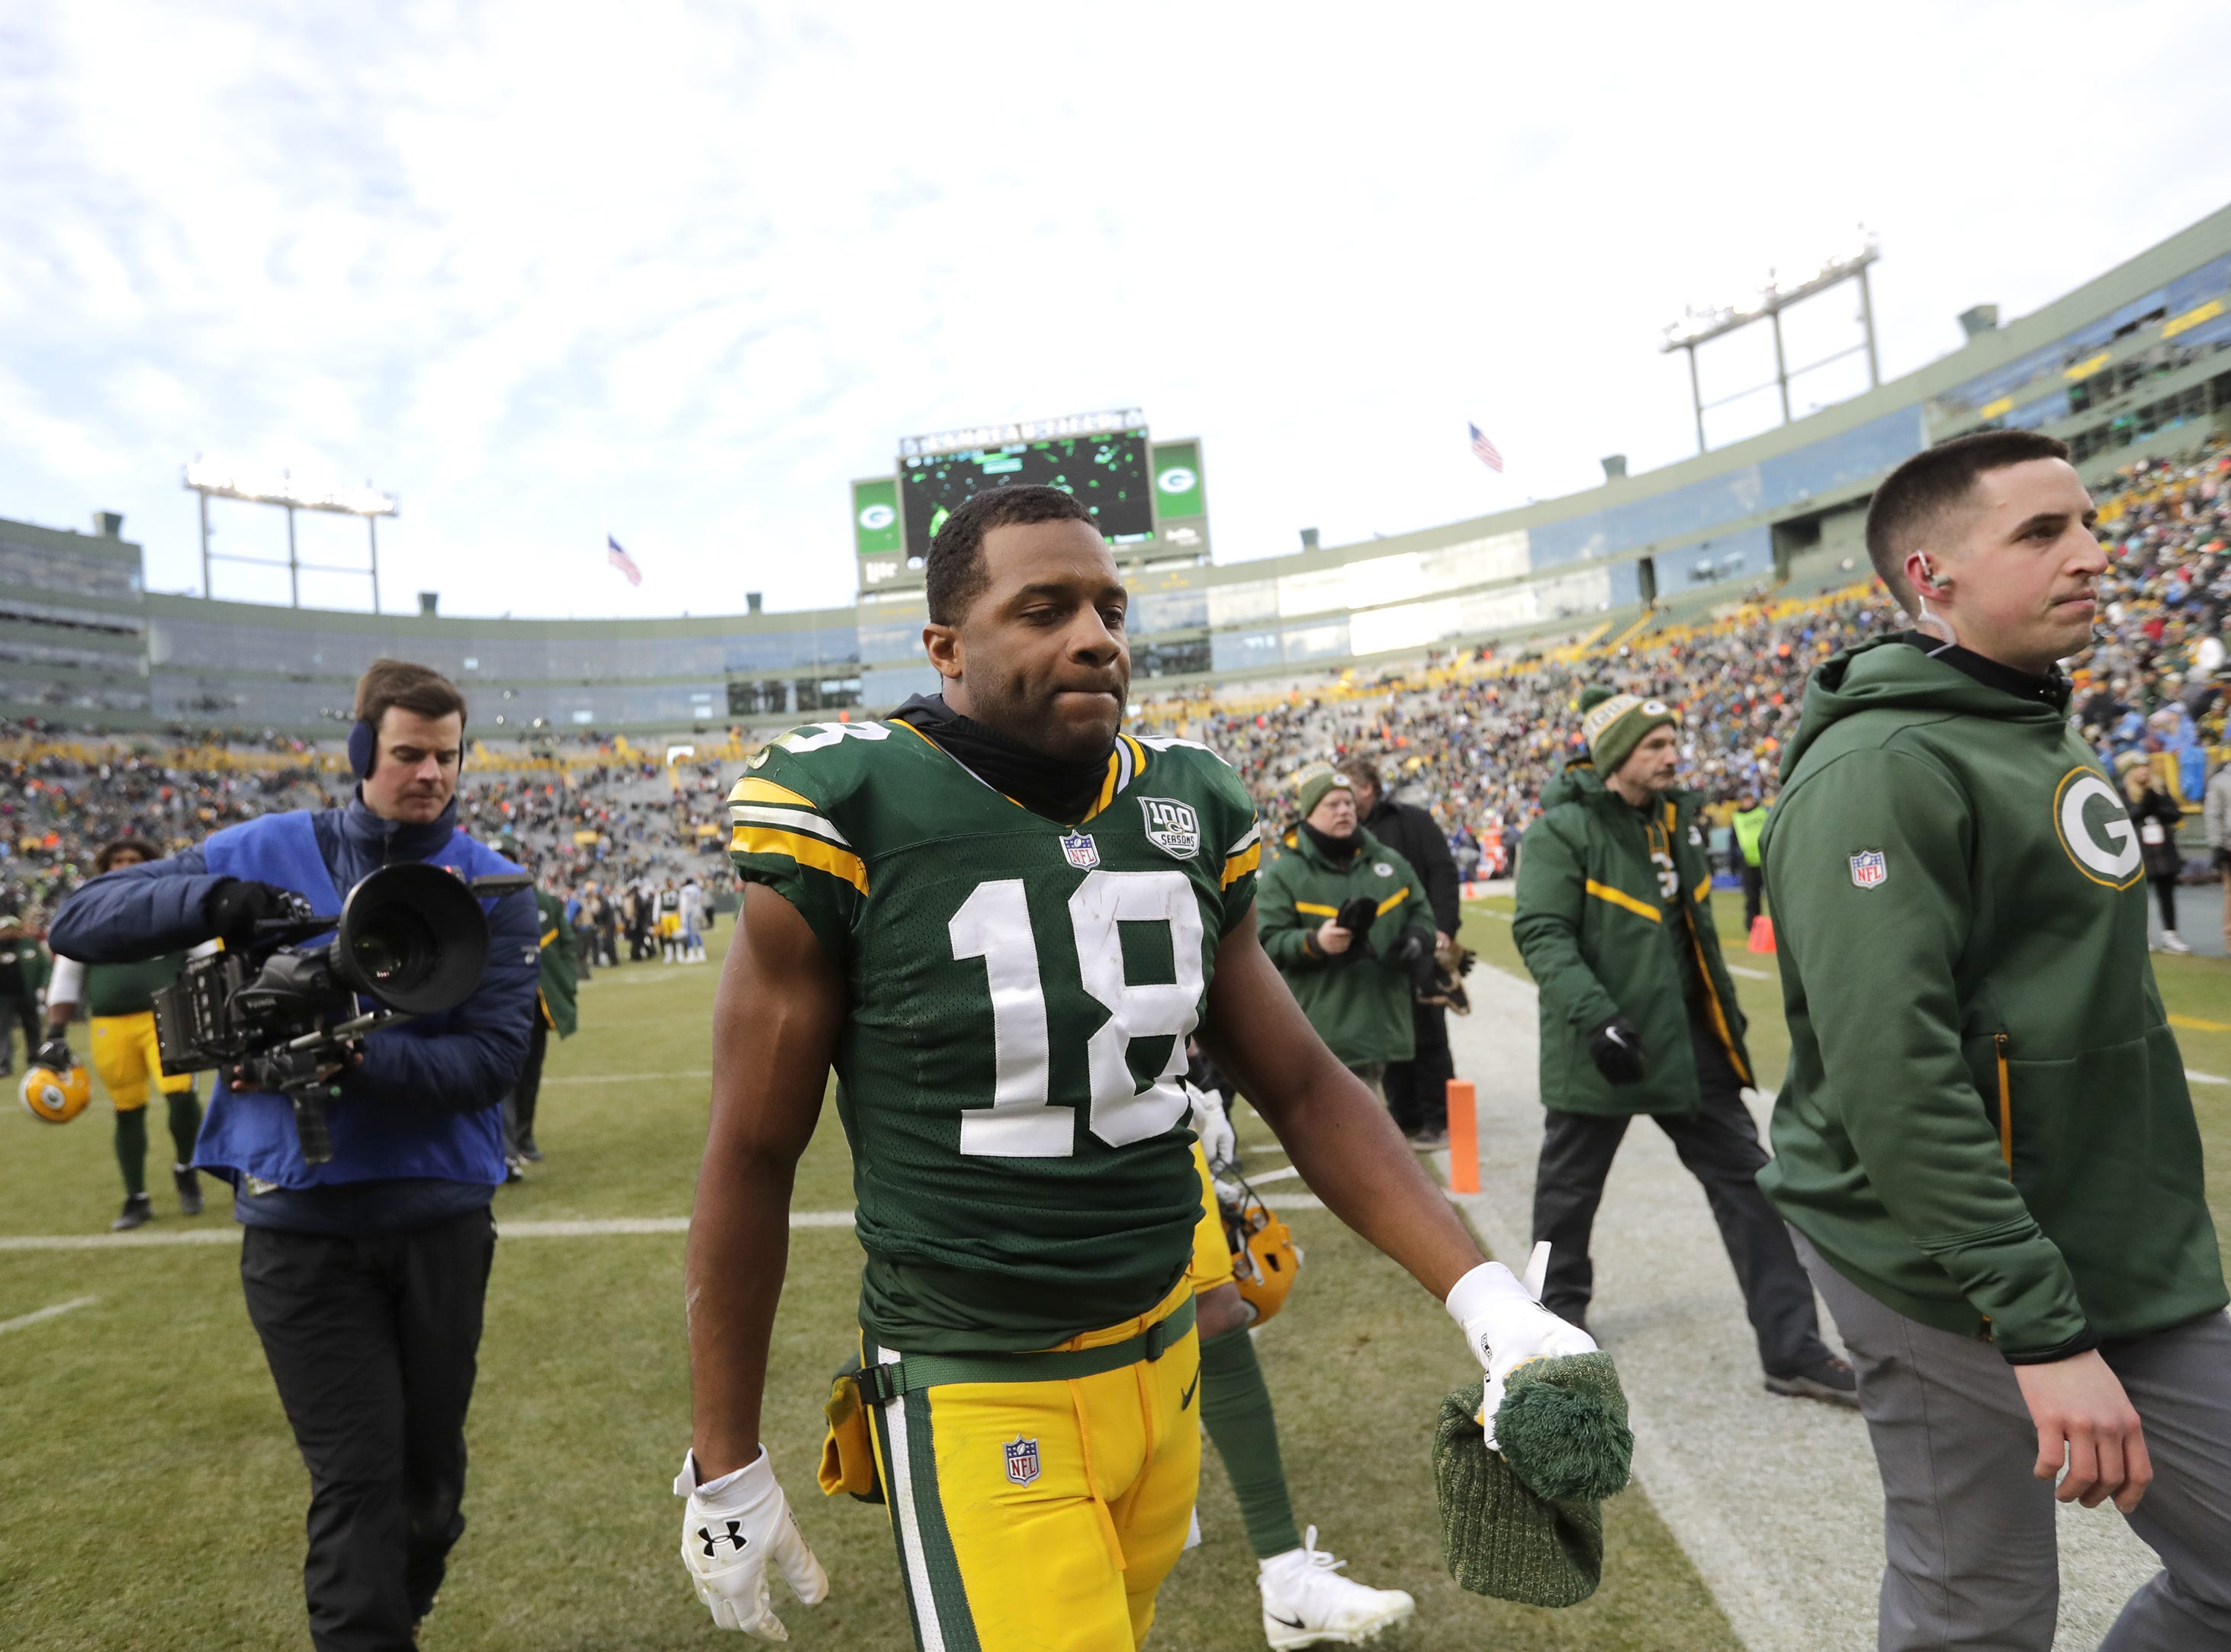 Green Bay Packers wide receiver Randall Cobb (18) leaves the field after a loss to the Detroit Lions Sunday, December 30, 2018, at Lambeau Field in Green Bay, Wis.  Dan Powers/USA TODAY NETWORK-Wisconsin